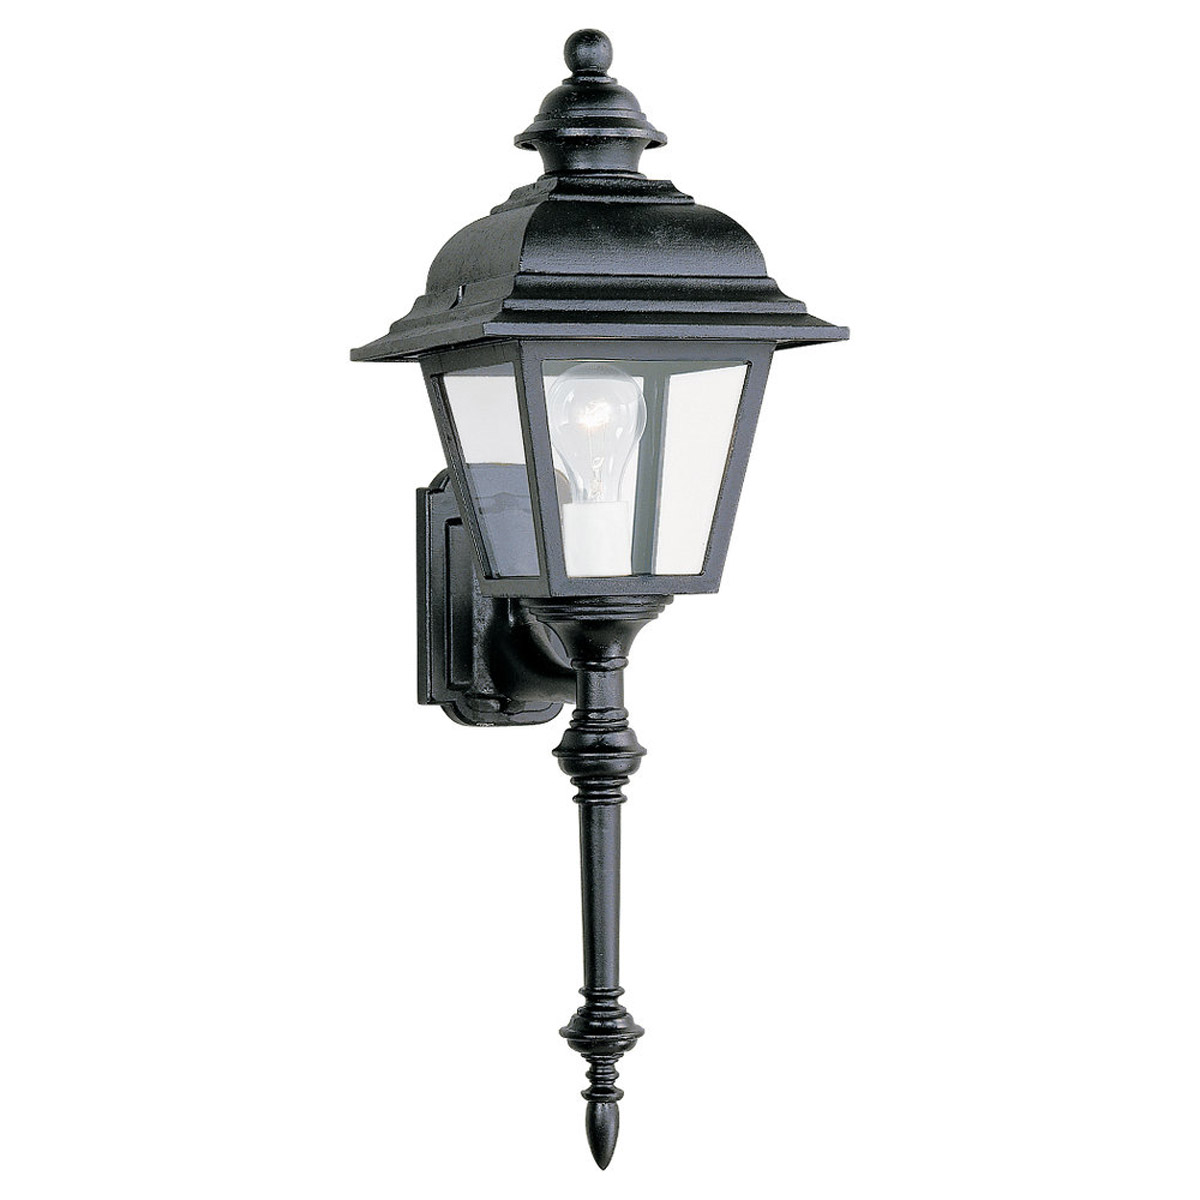 Sea Gull Lighting Bancroft 1 Light Outdoor Wall Lantern in Black 8814-12